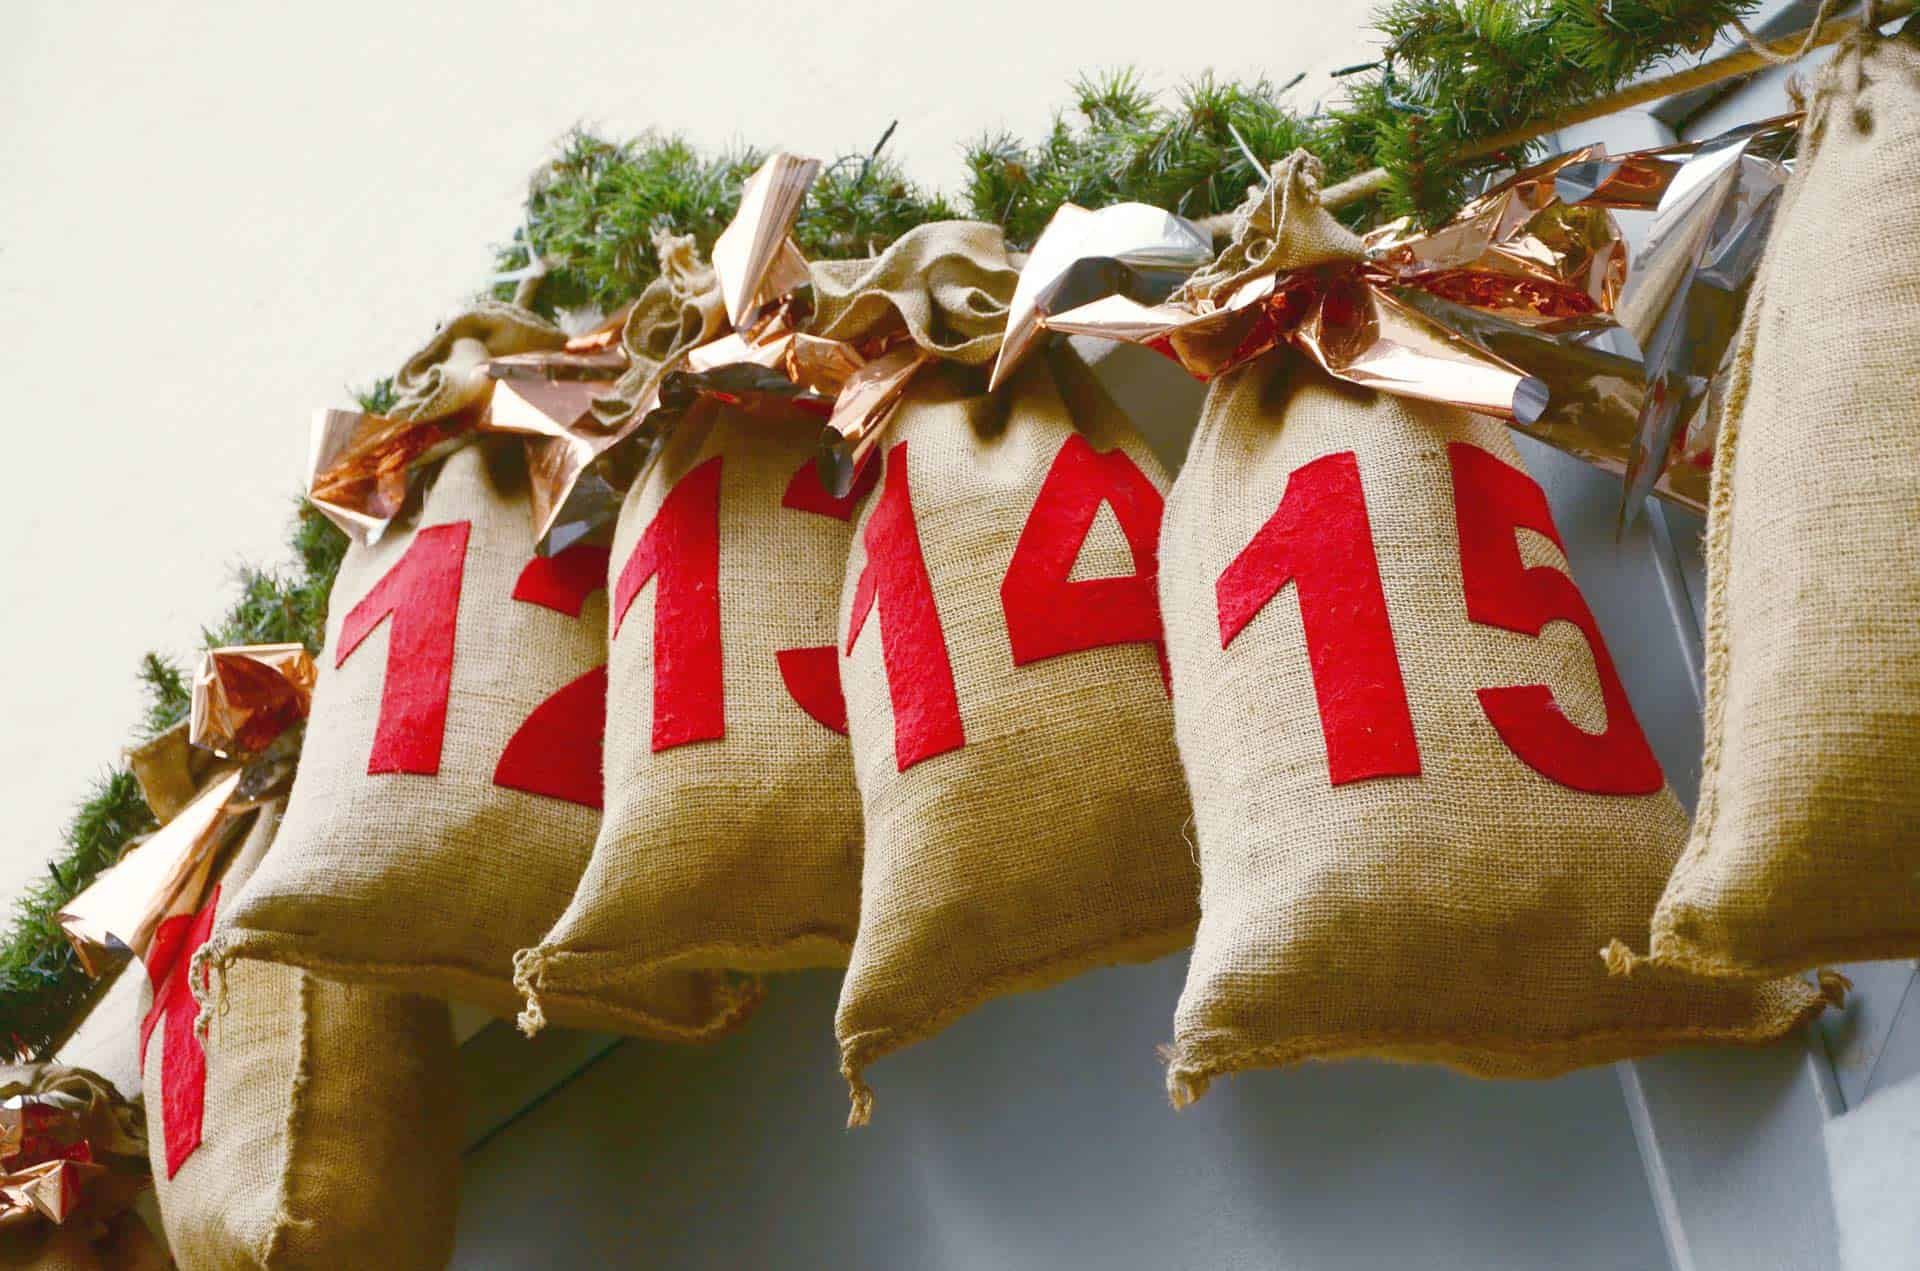 cloth bags for advent calendar with candy